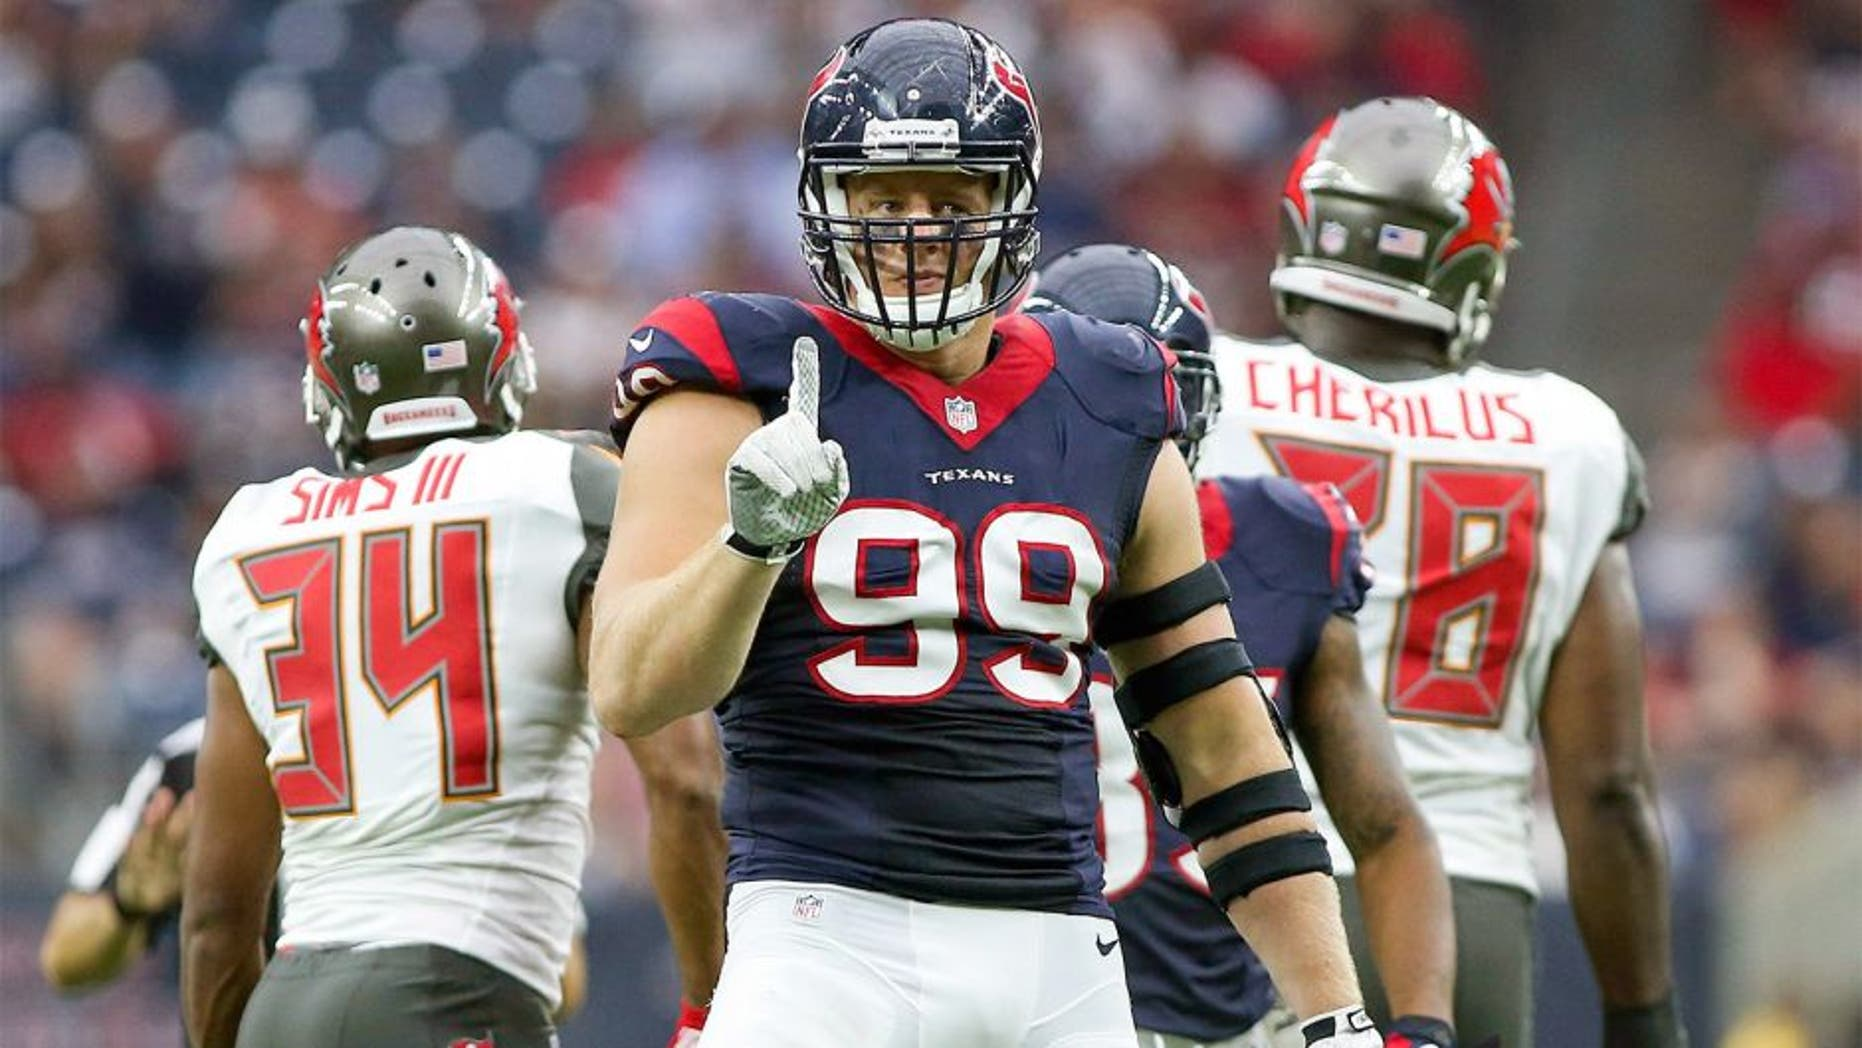 Sep 27, 2015; Houston, TX, USA; Houston Texans defensive end J.J. Watt (99) reacts after making a tackle during the second quarter against the Tampa Bay Buccaneers at NRG Stadium. Mandatory Credit: Troy Taormina-USA TODAY Sports